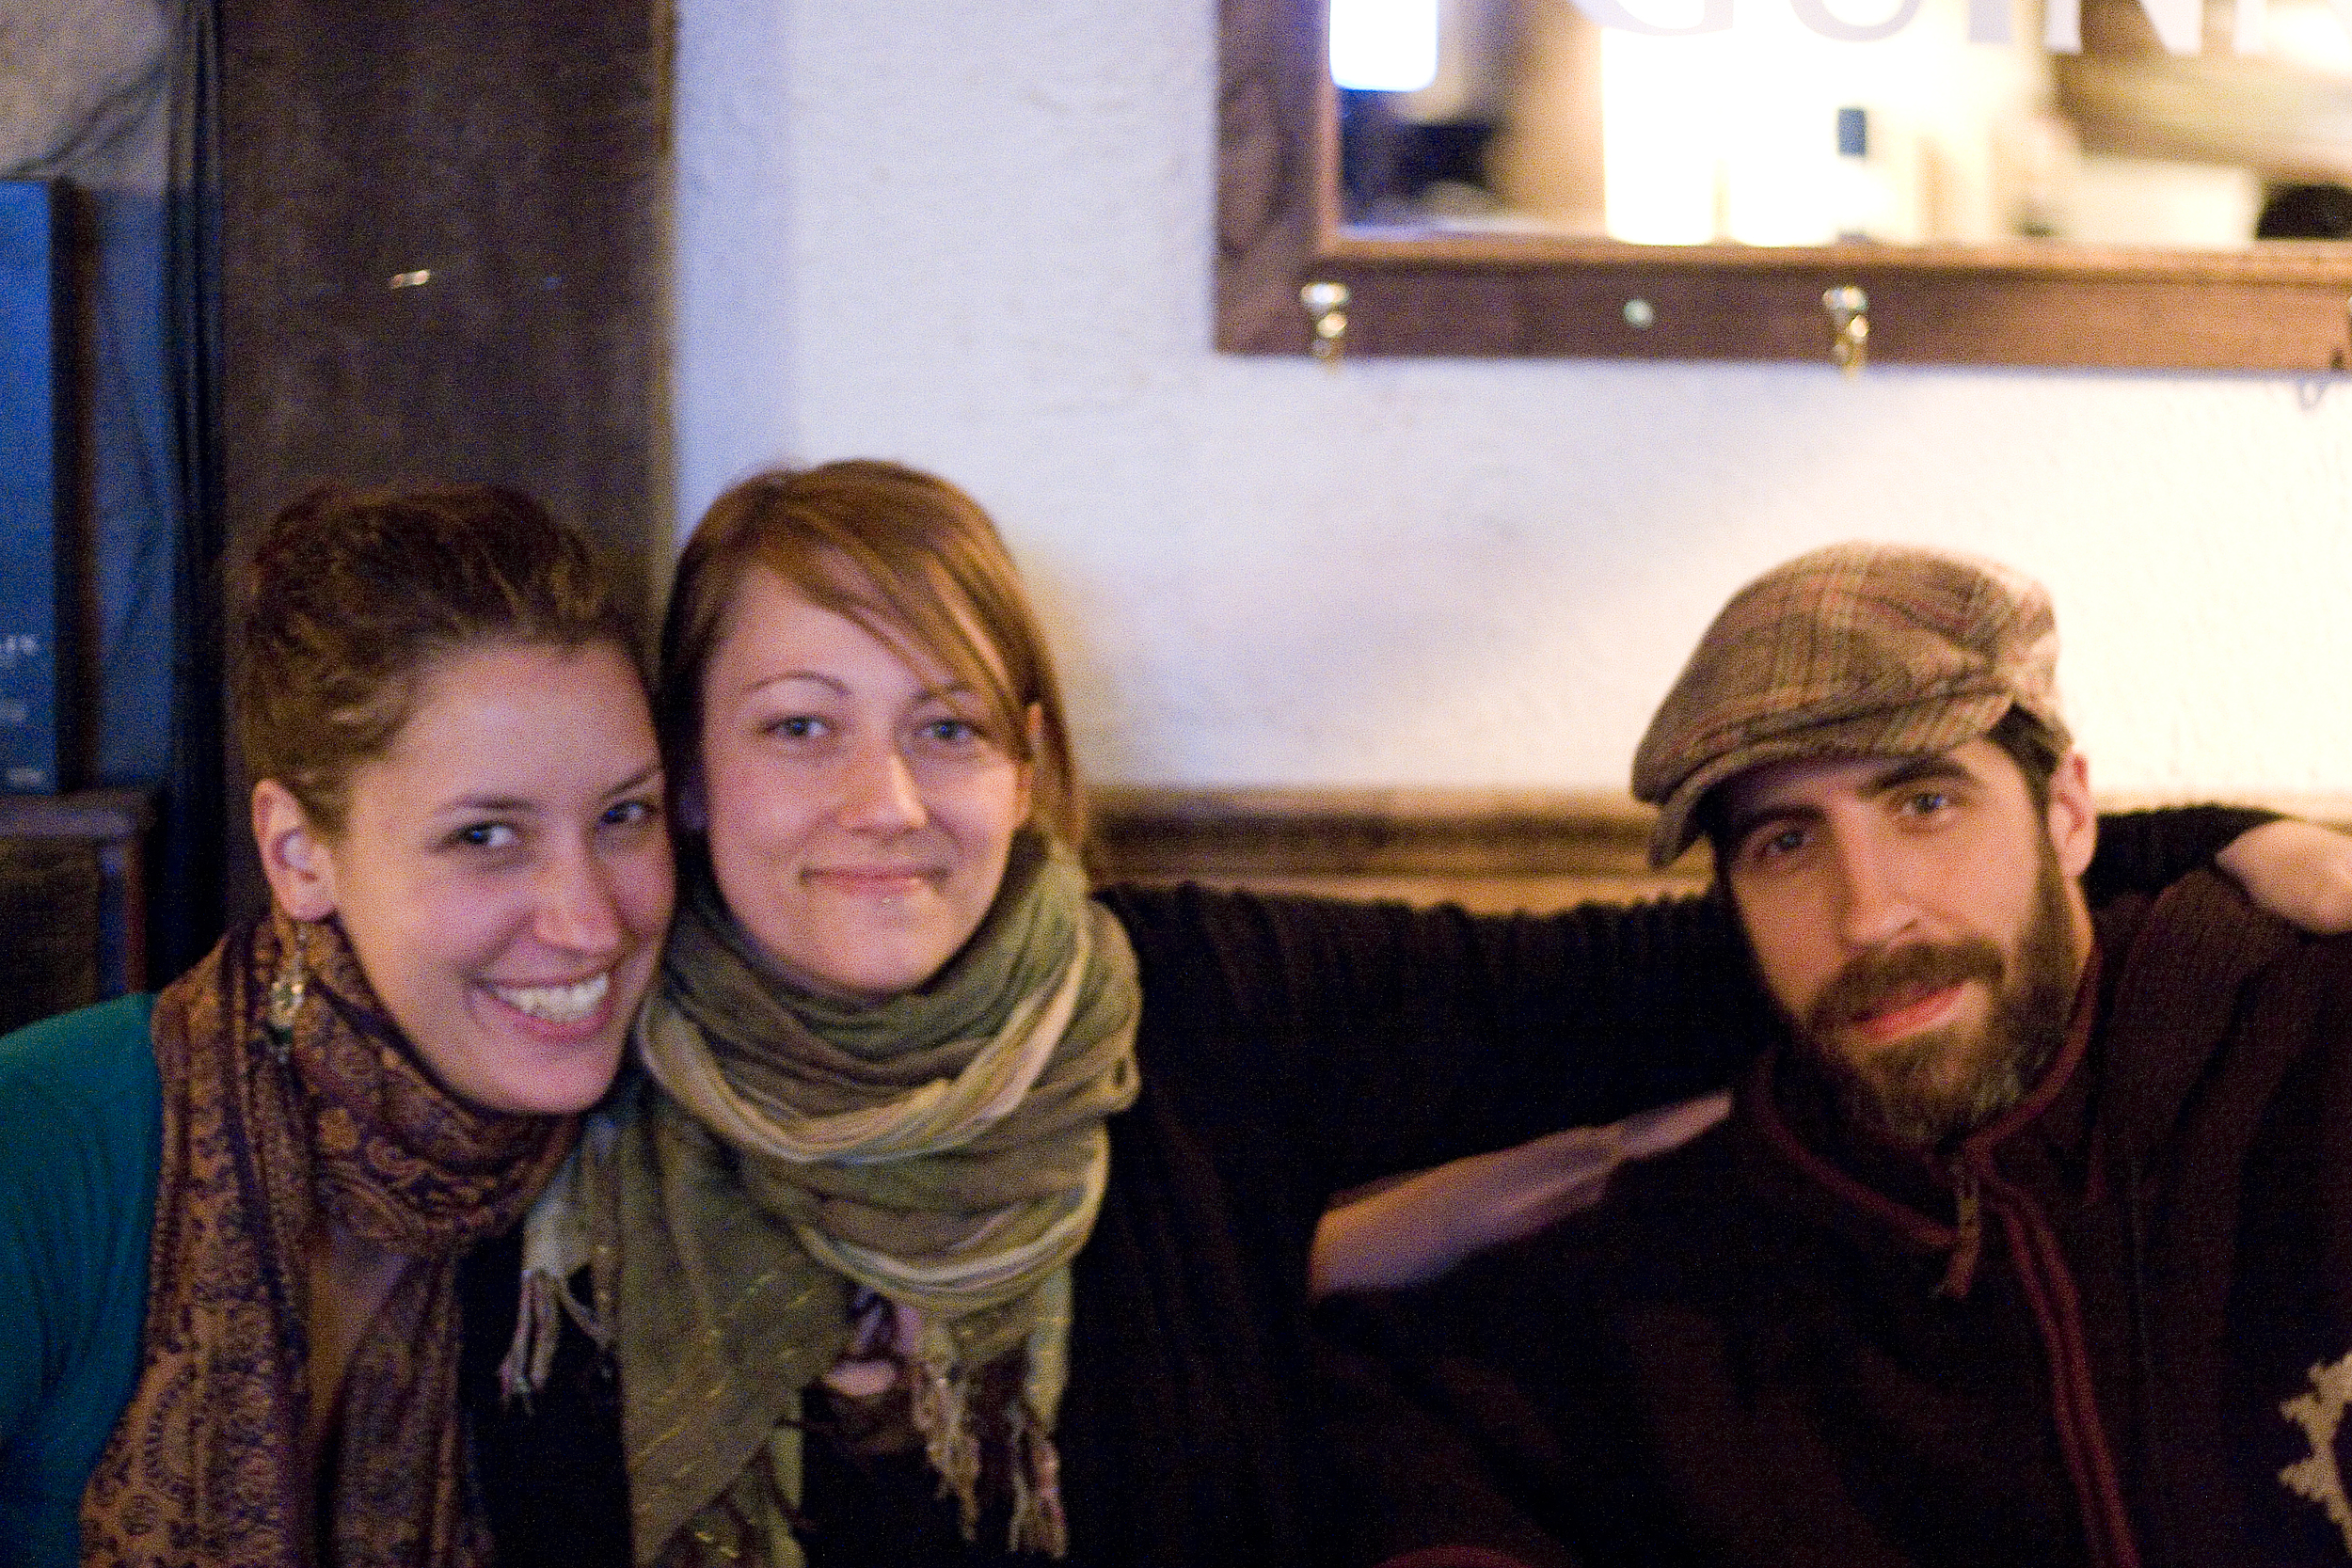 With close friends in 2009, after going gluten free.